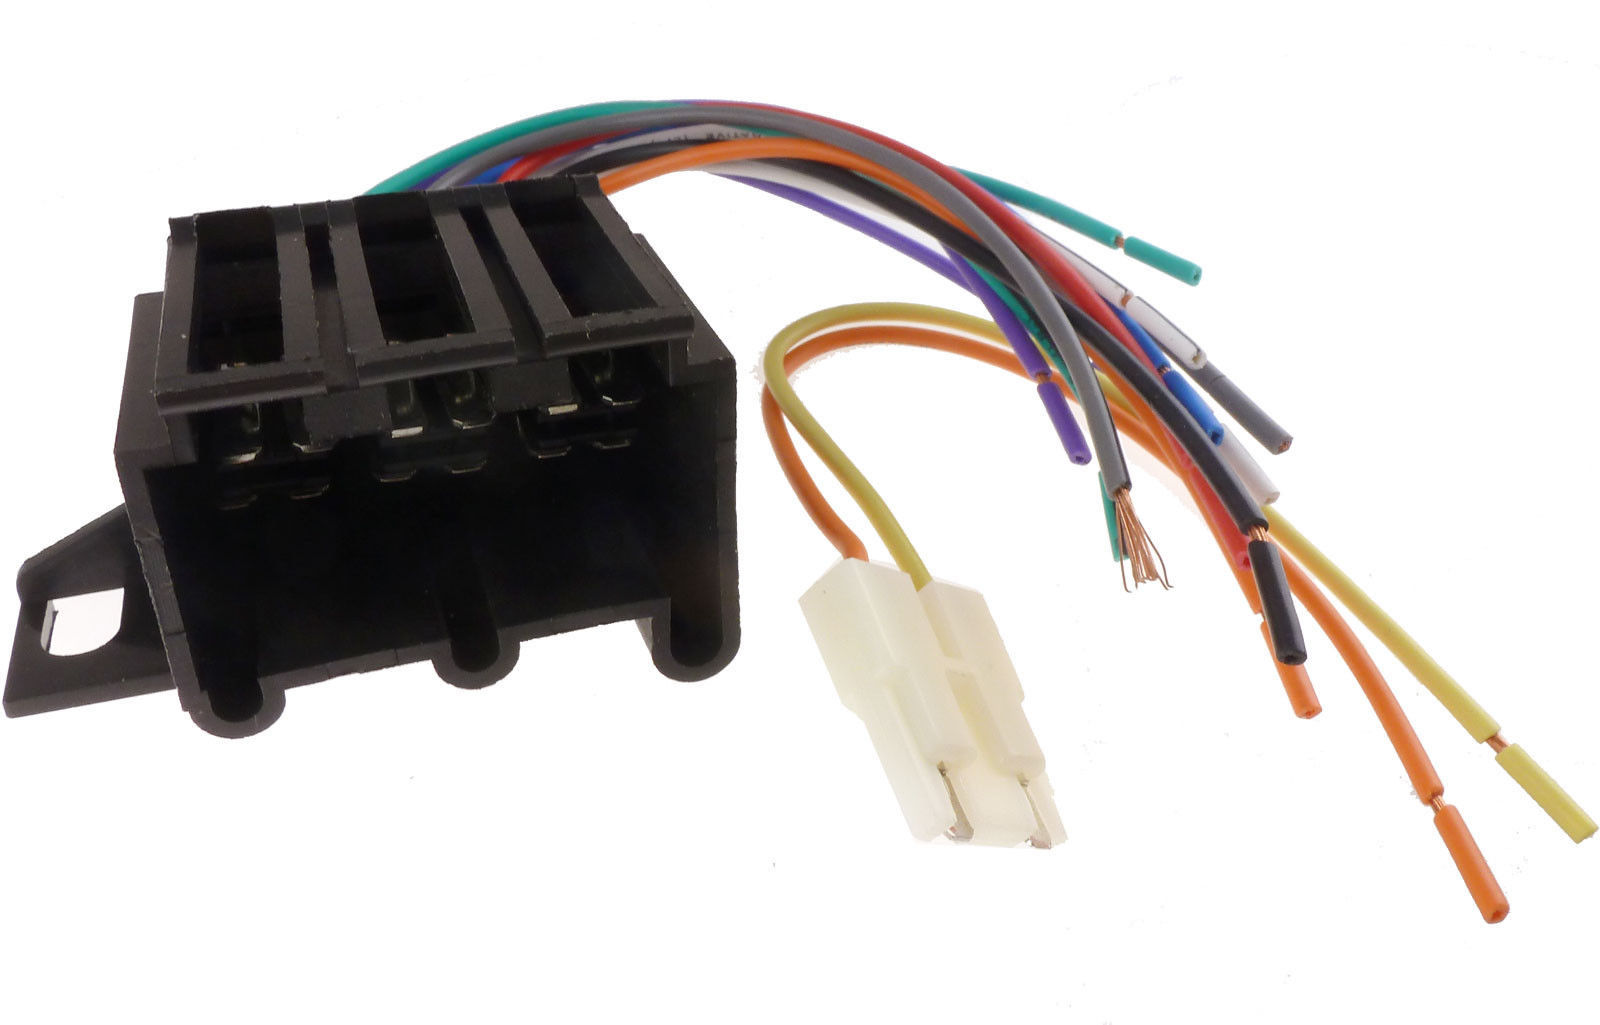 Gm Aftermarket Wiring Harness Diagrams Parts Early Car Stereo Cd Player Wire Performance Oem